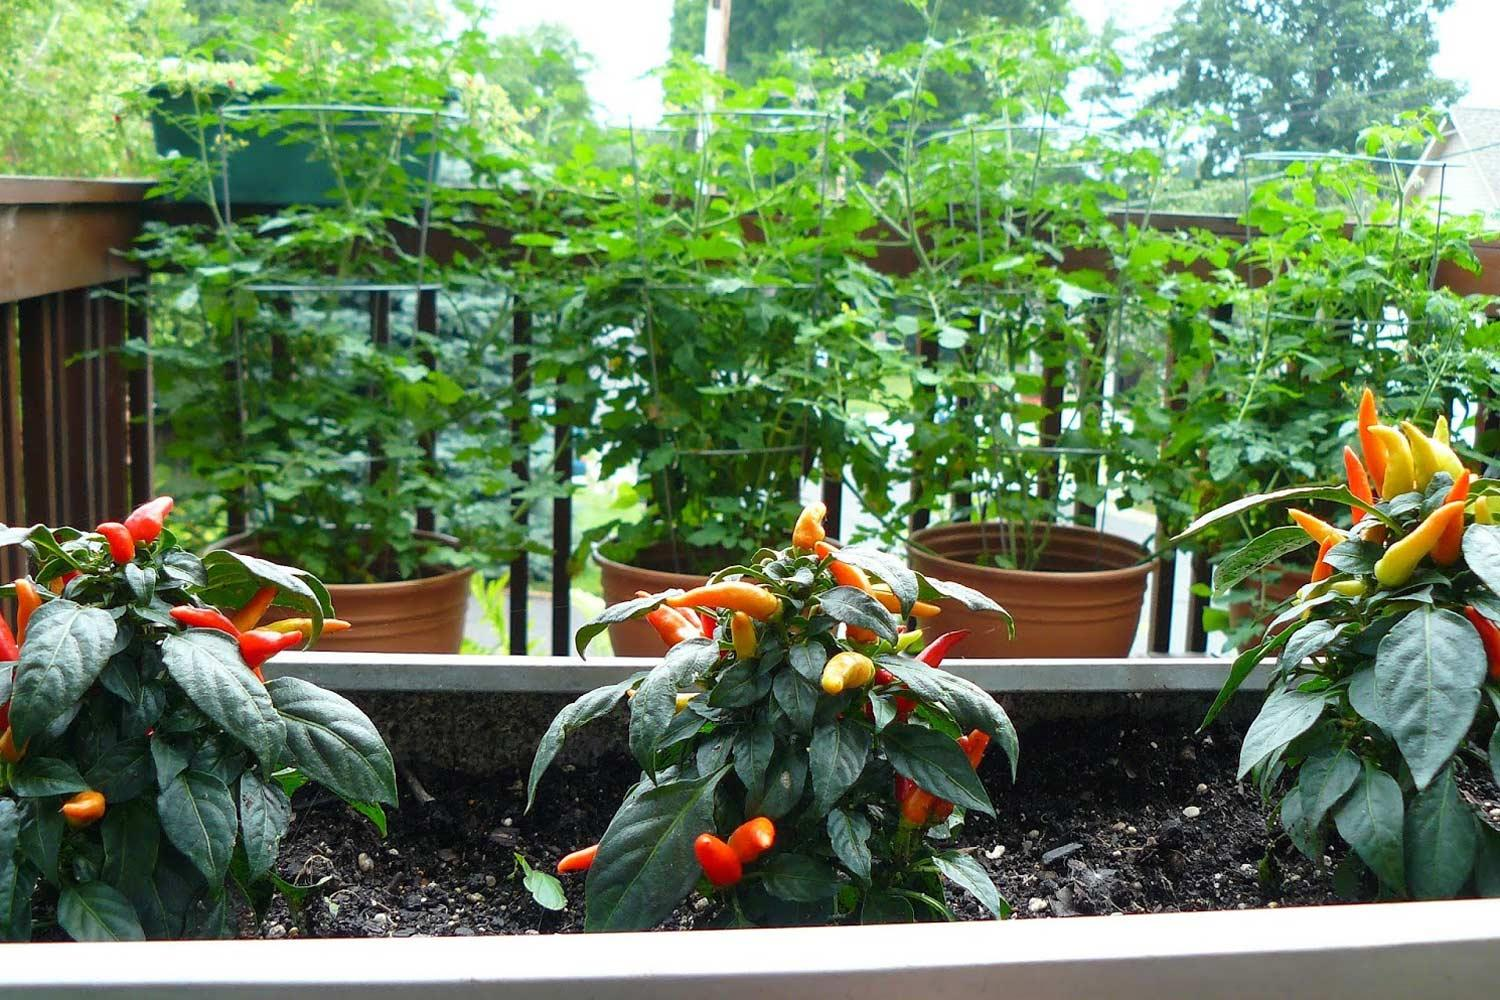 Hot pepper plants and tomatoes planted in containers on an outdoor deck.